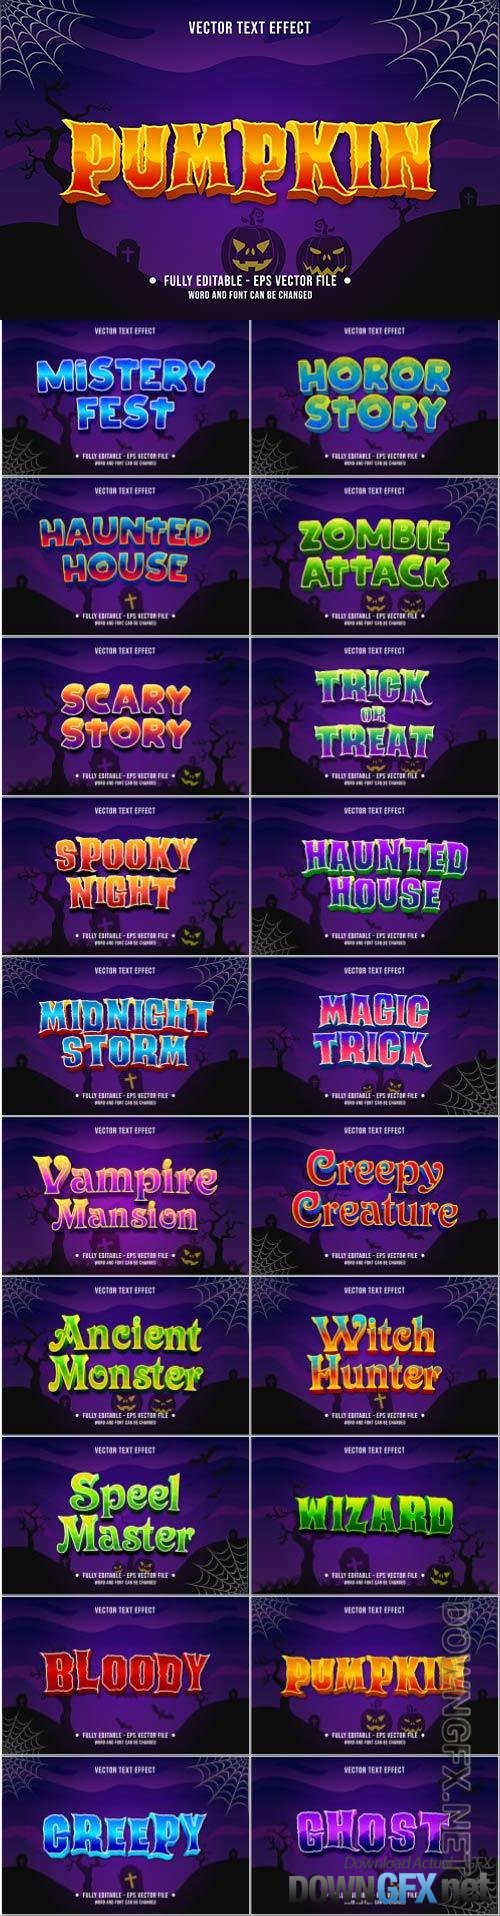 Editable text effect scary halloween event theme style for digital and print media template vector